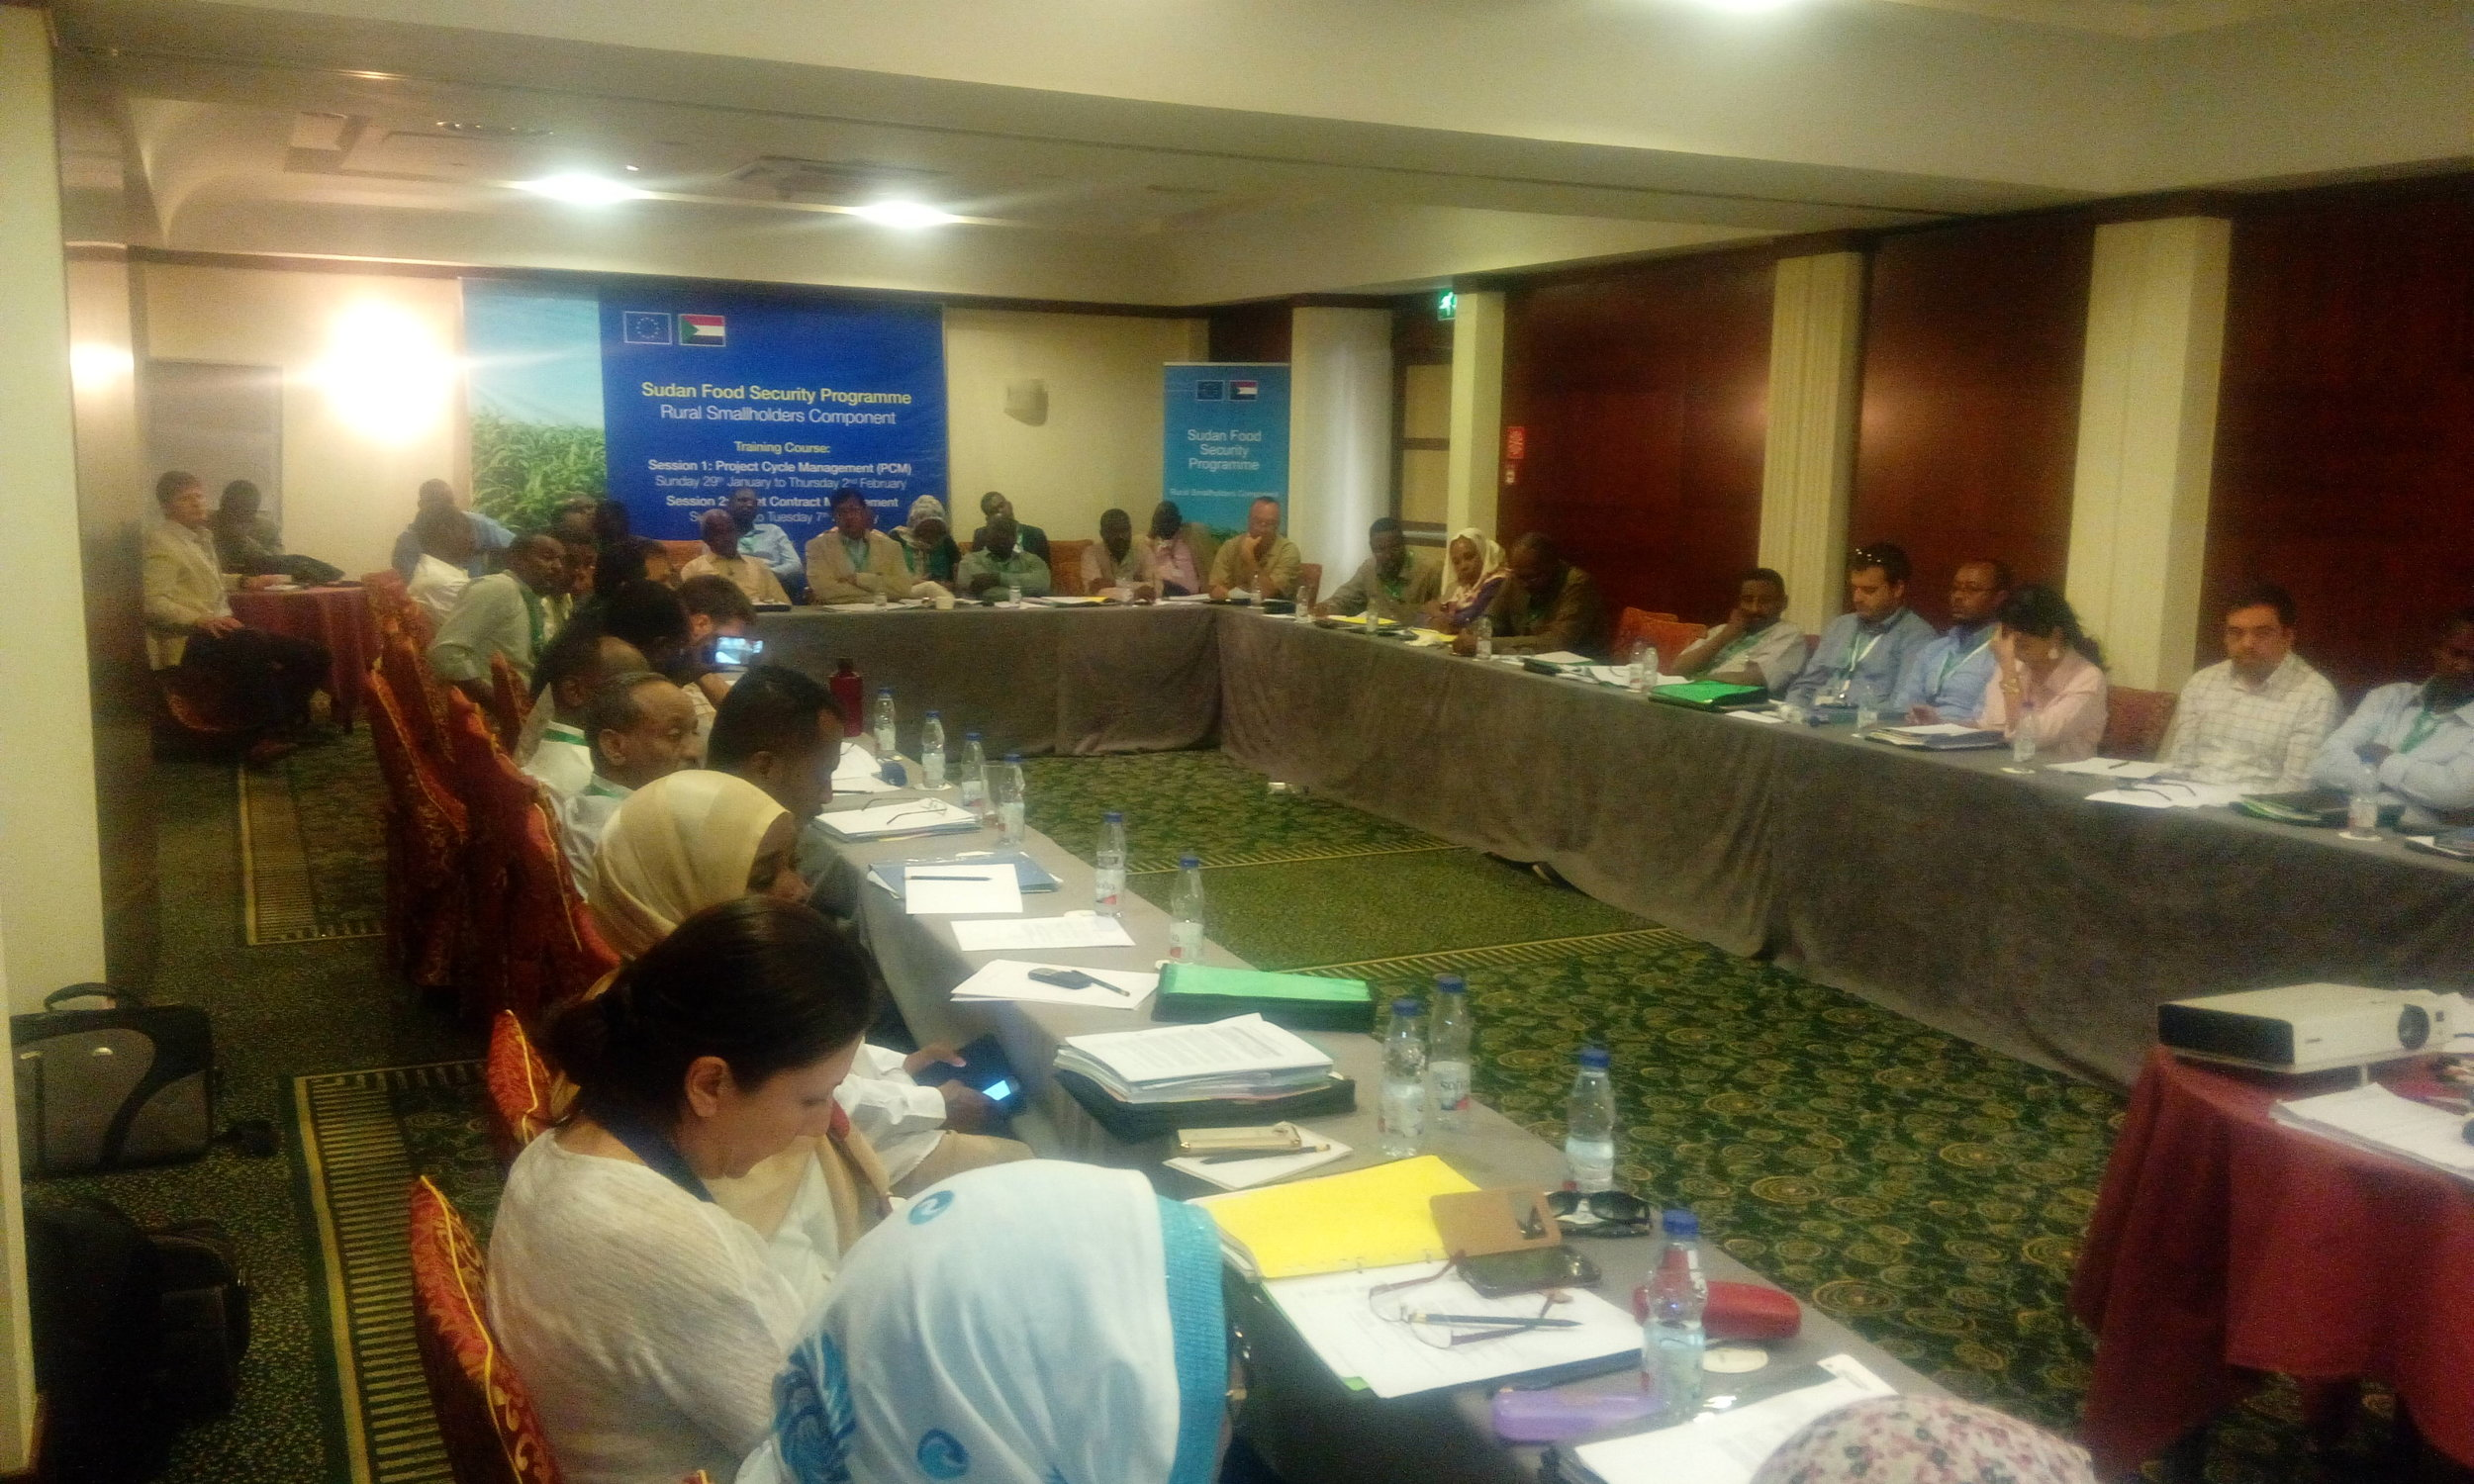 Trainees during a Grant Contract Management training session